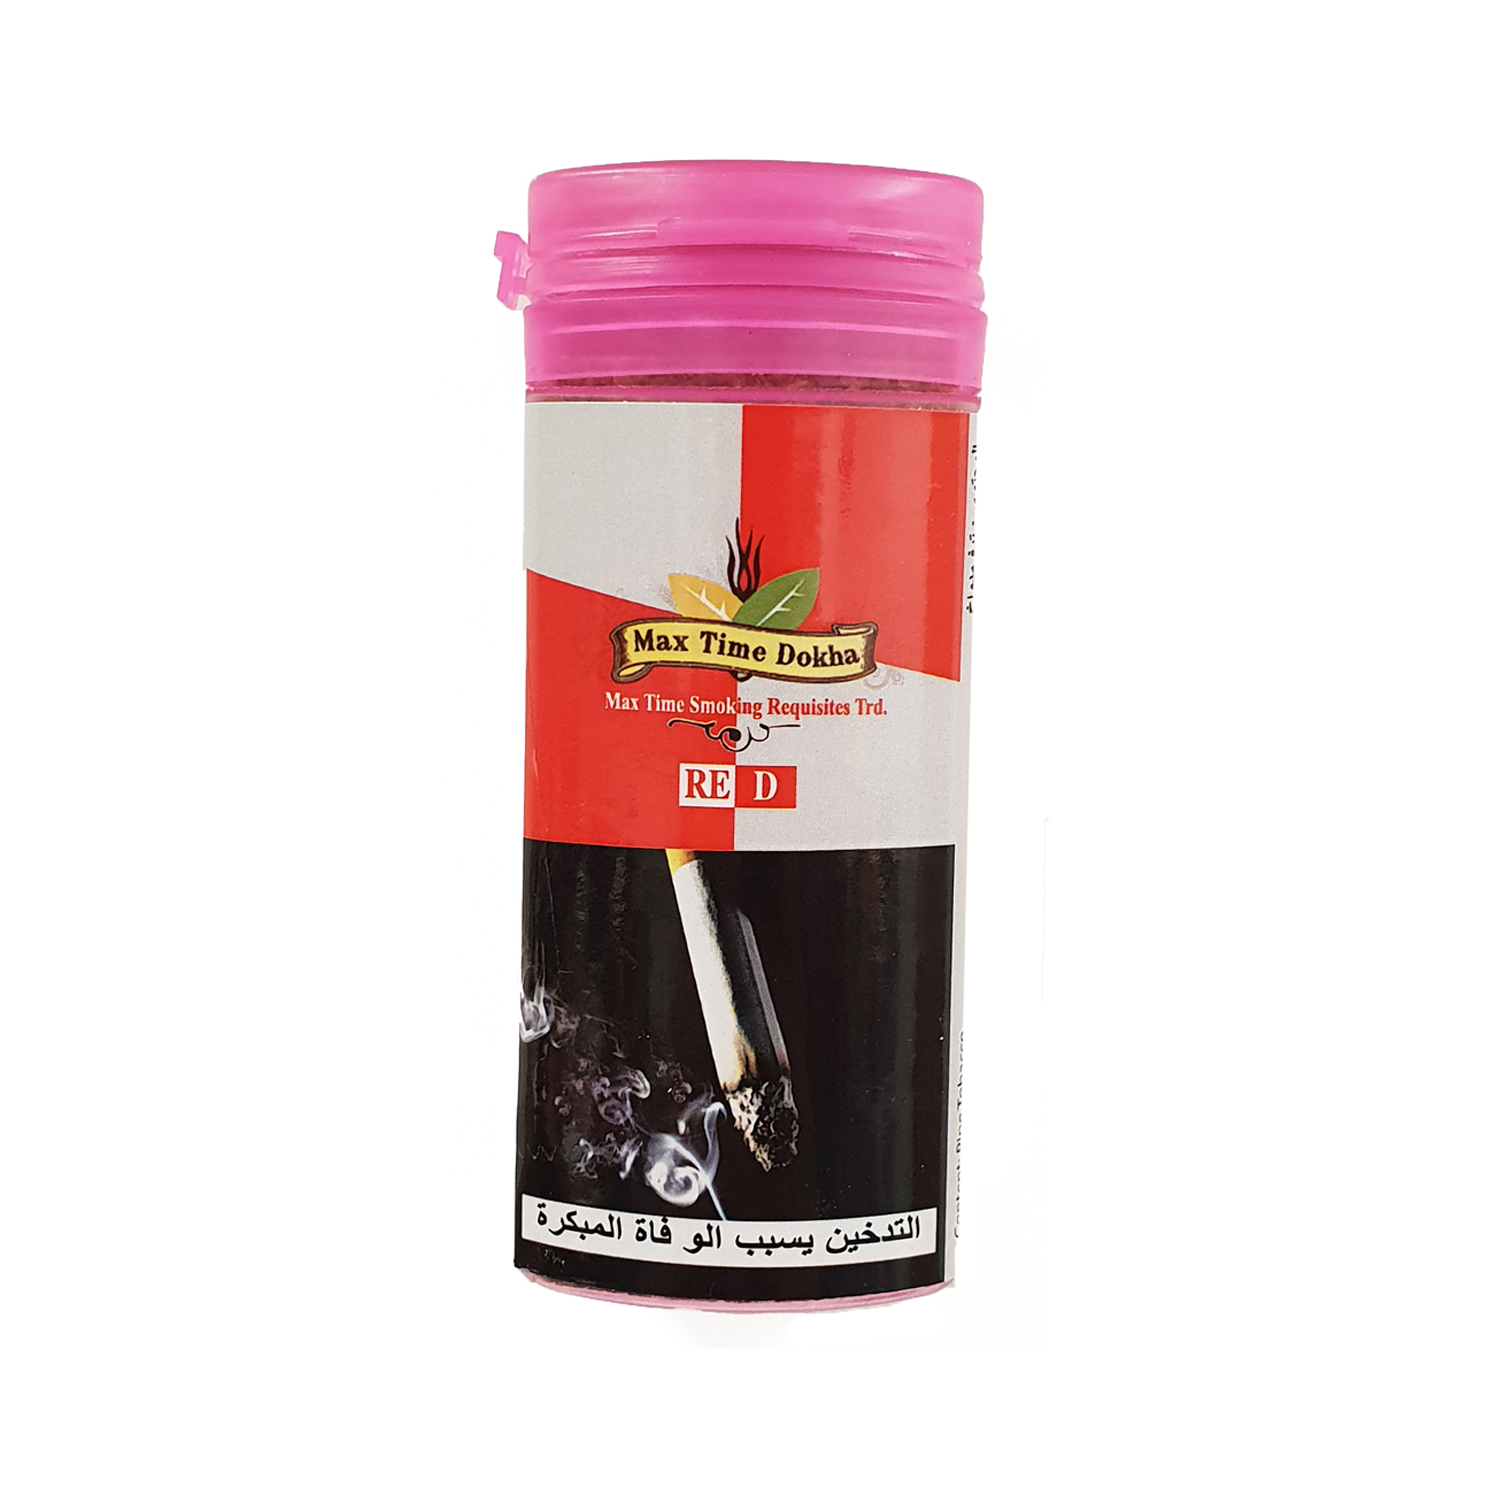 Enjoy Dokha - Max Time Red Hot Dokha tobacco - Middle Eastern Arabic Pipe Tobacco